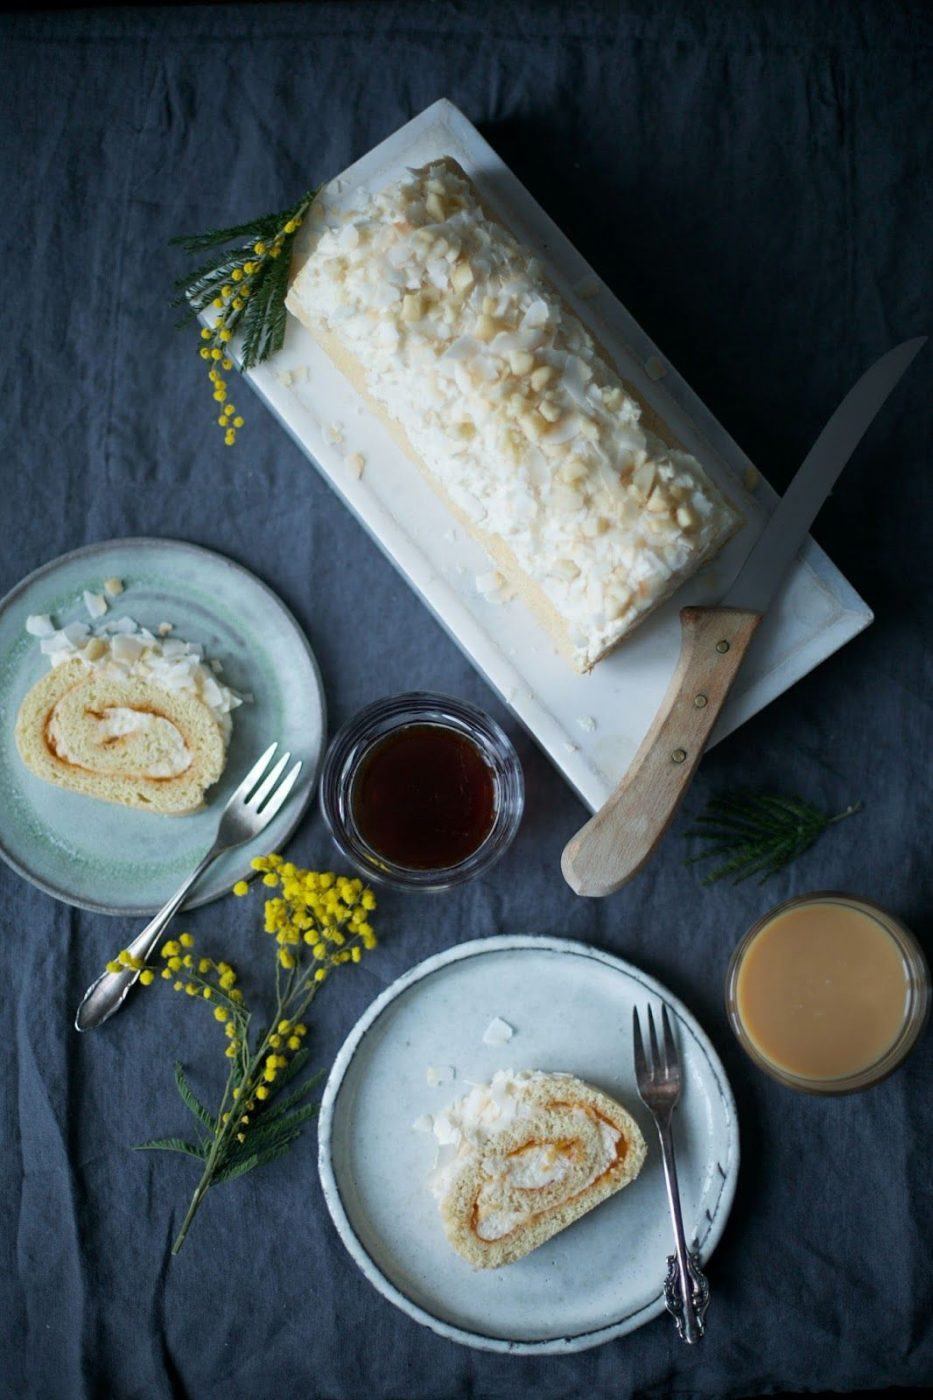 Image for Gluten-free Macadamia-Apricot Swiss Roll with Coconut Flakes